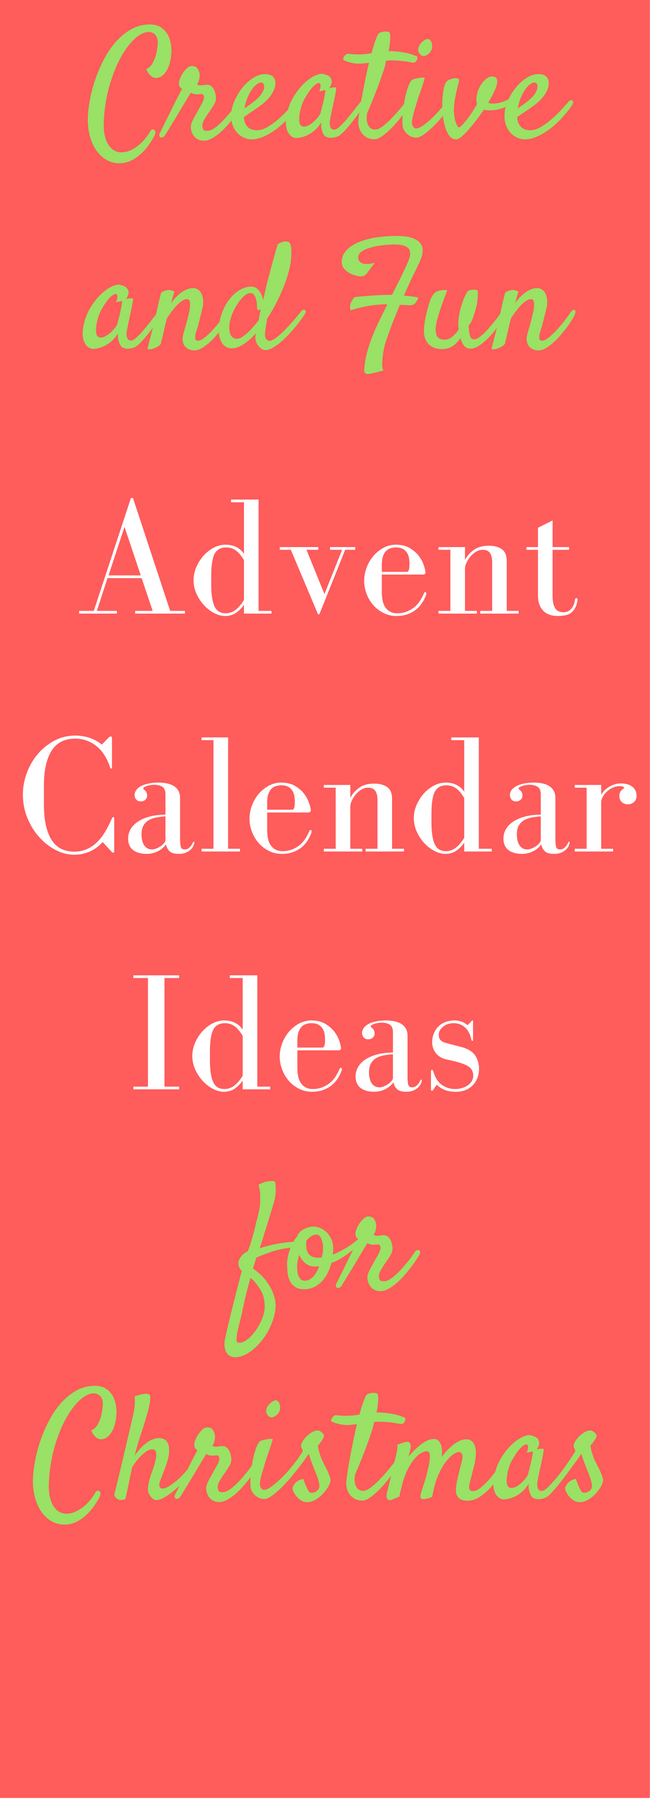 Advent calendar ideas for Christmas for kids, adults, and everyone in between! via @clarkscondensed